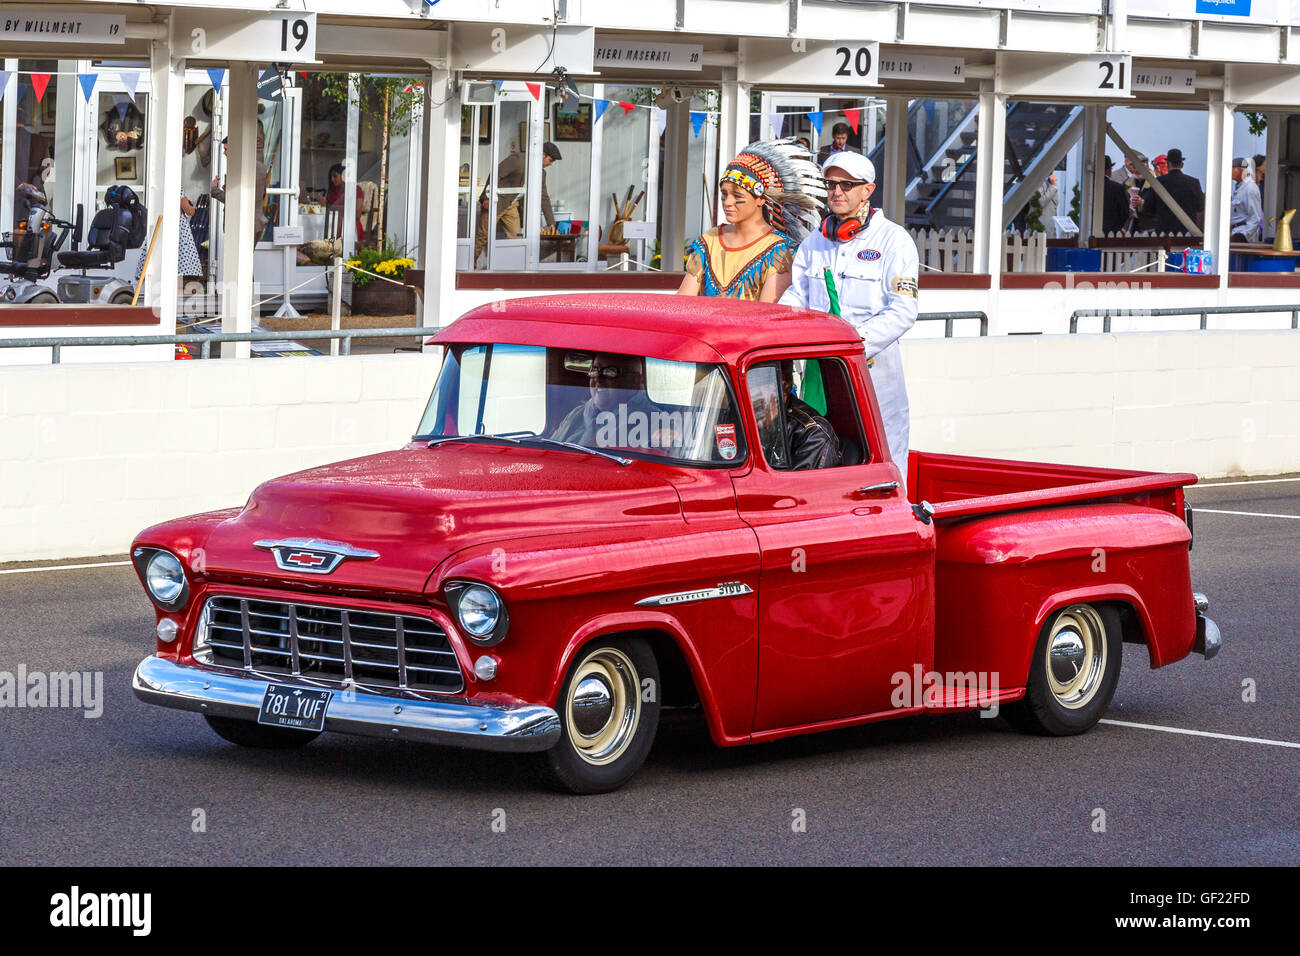 All Chevy 1955 chevrolet 3100 : 1955 Chevrolet 3100 pick-up support vehicle with the indian and ...